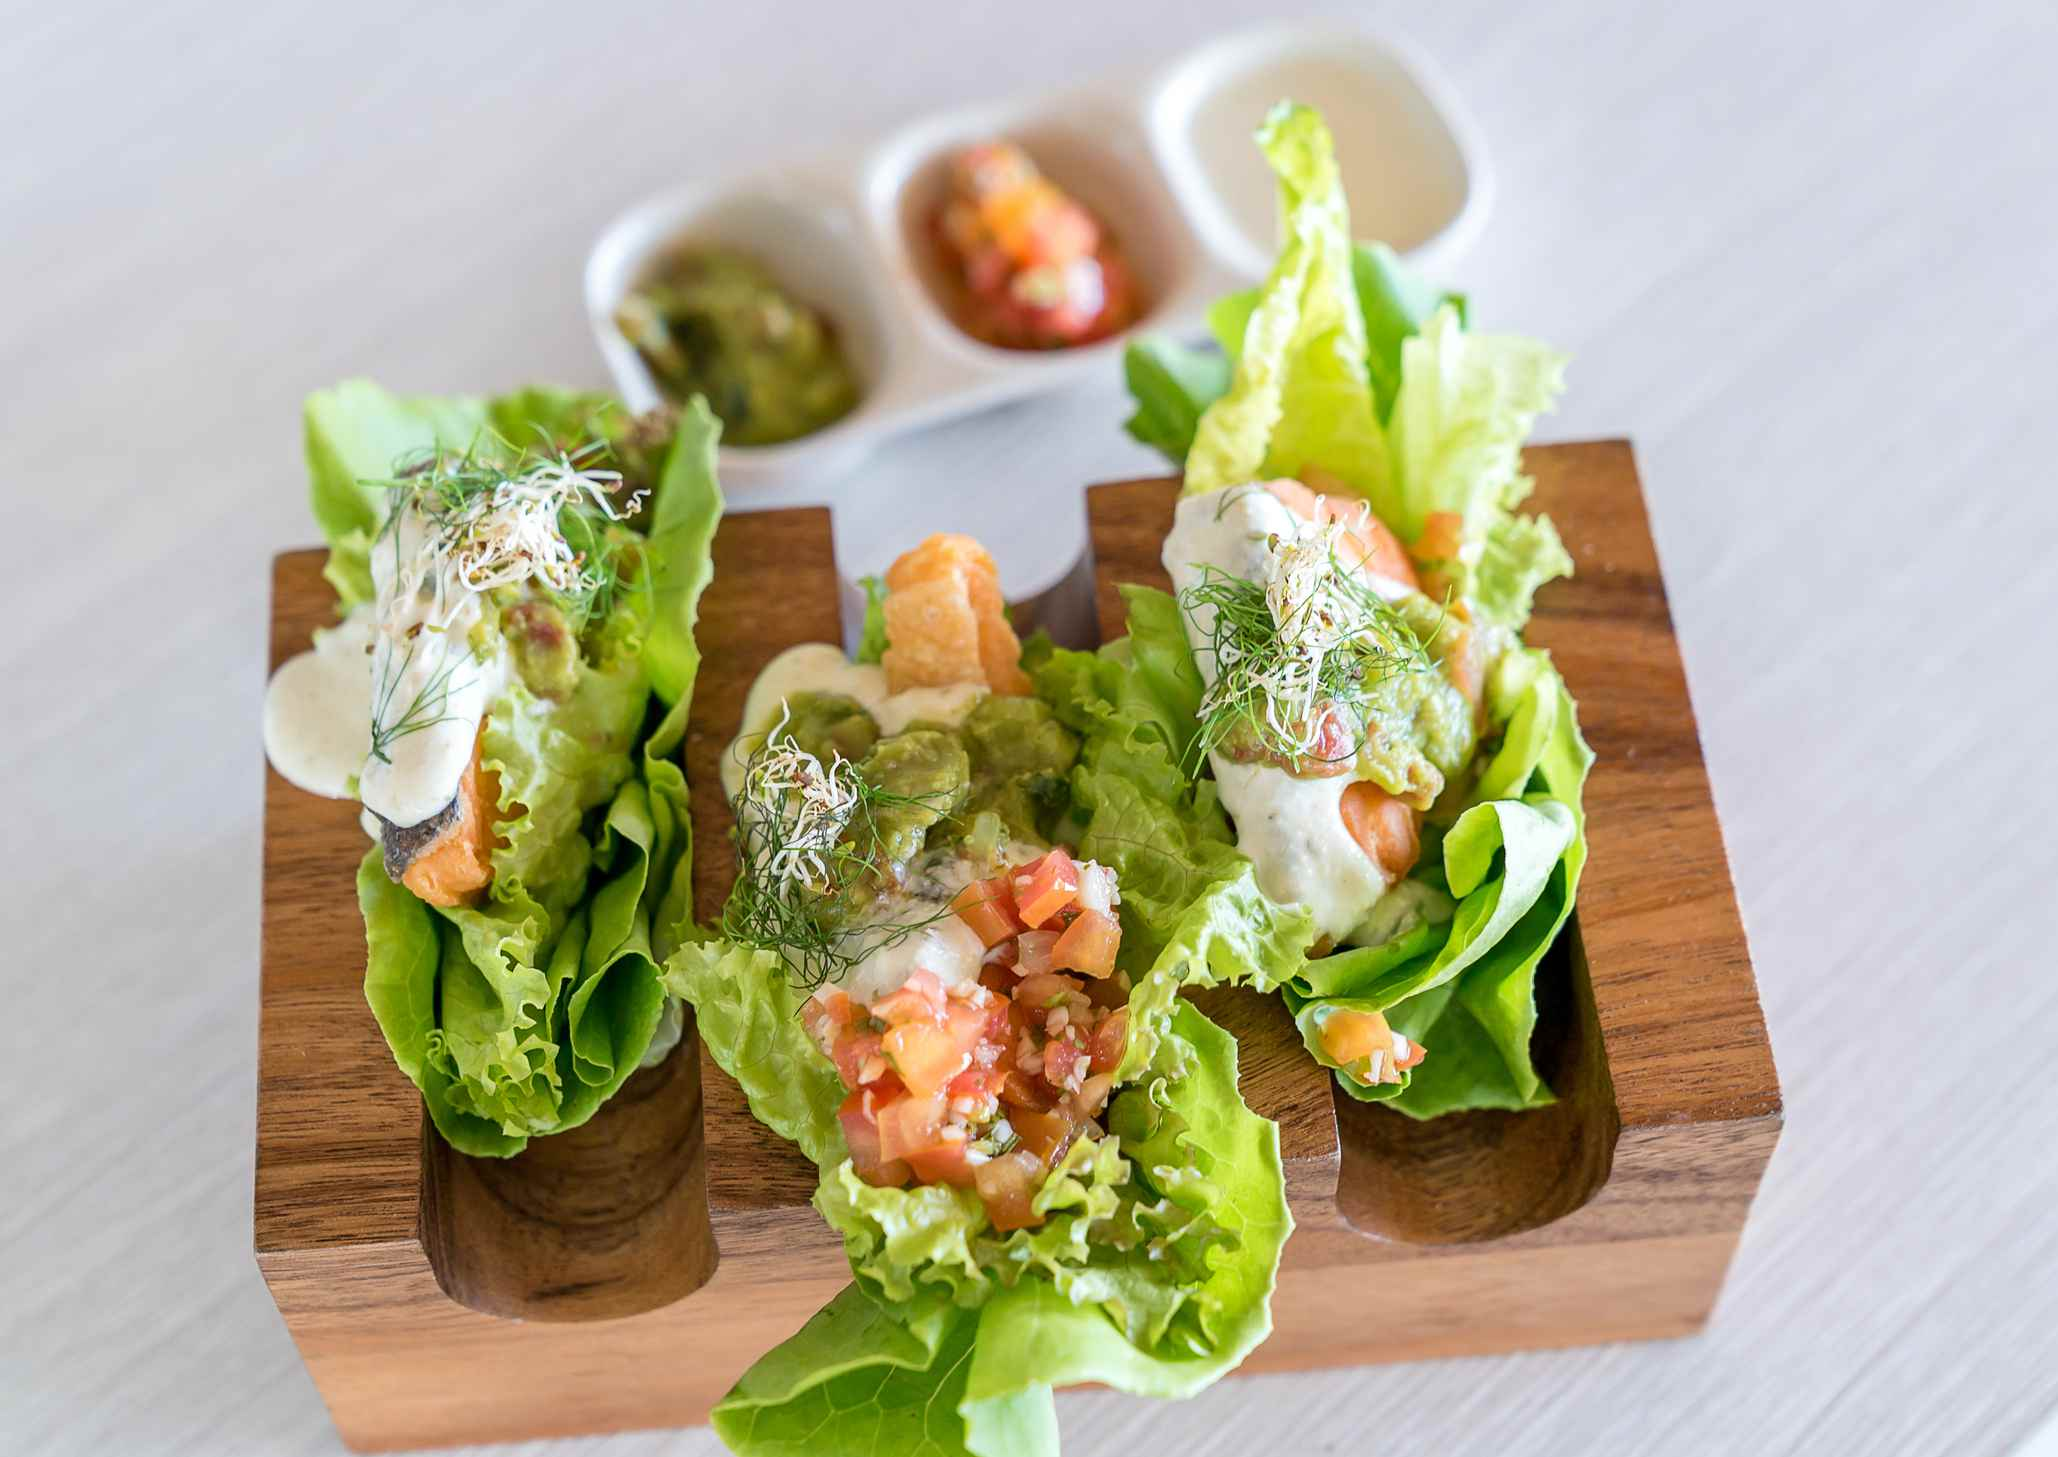 Salmon tacos using lettuce